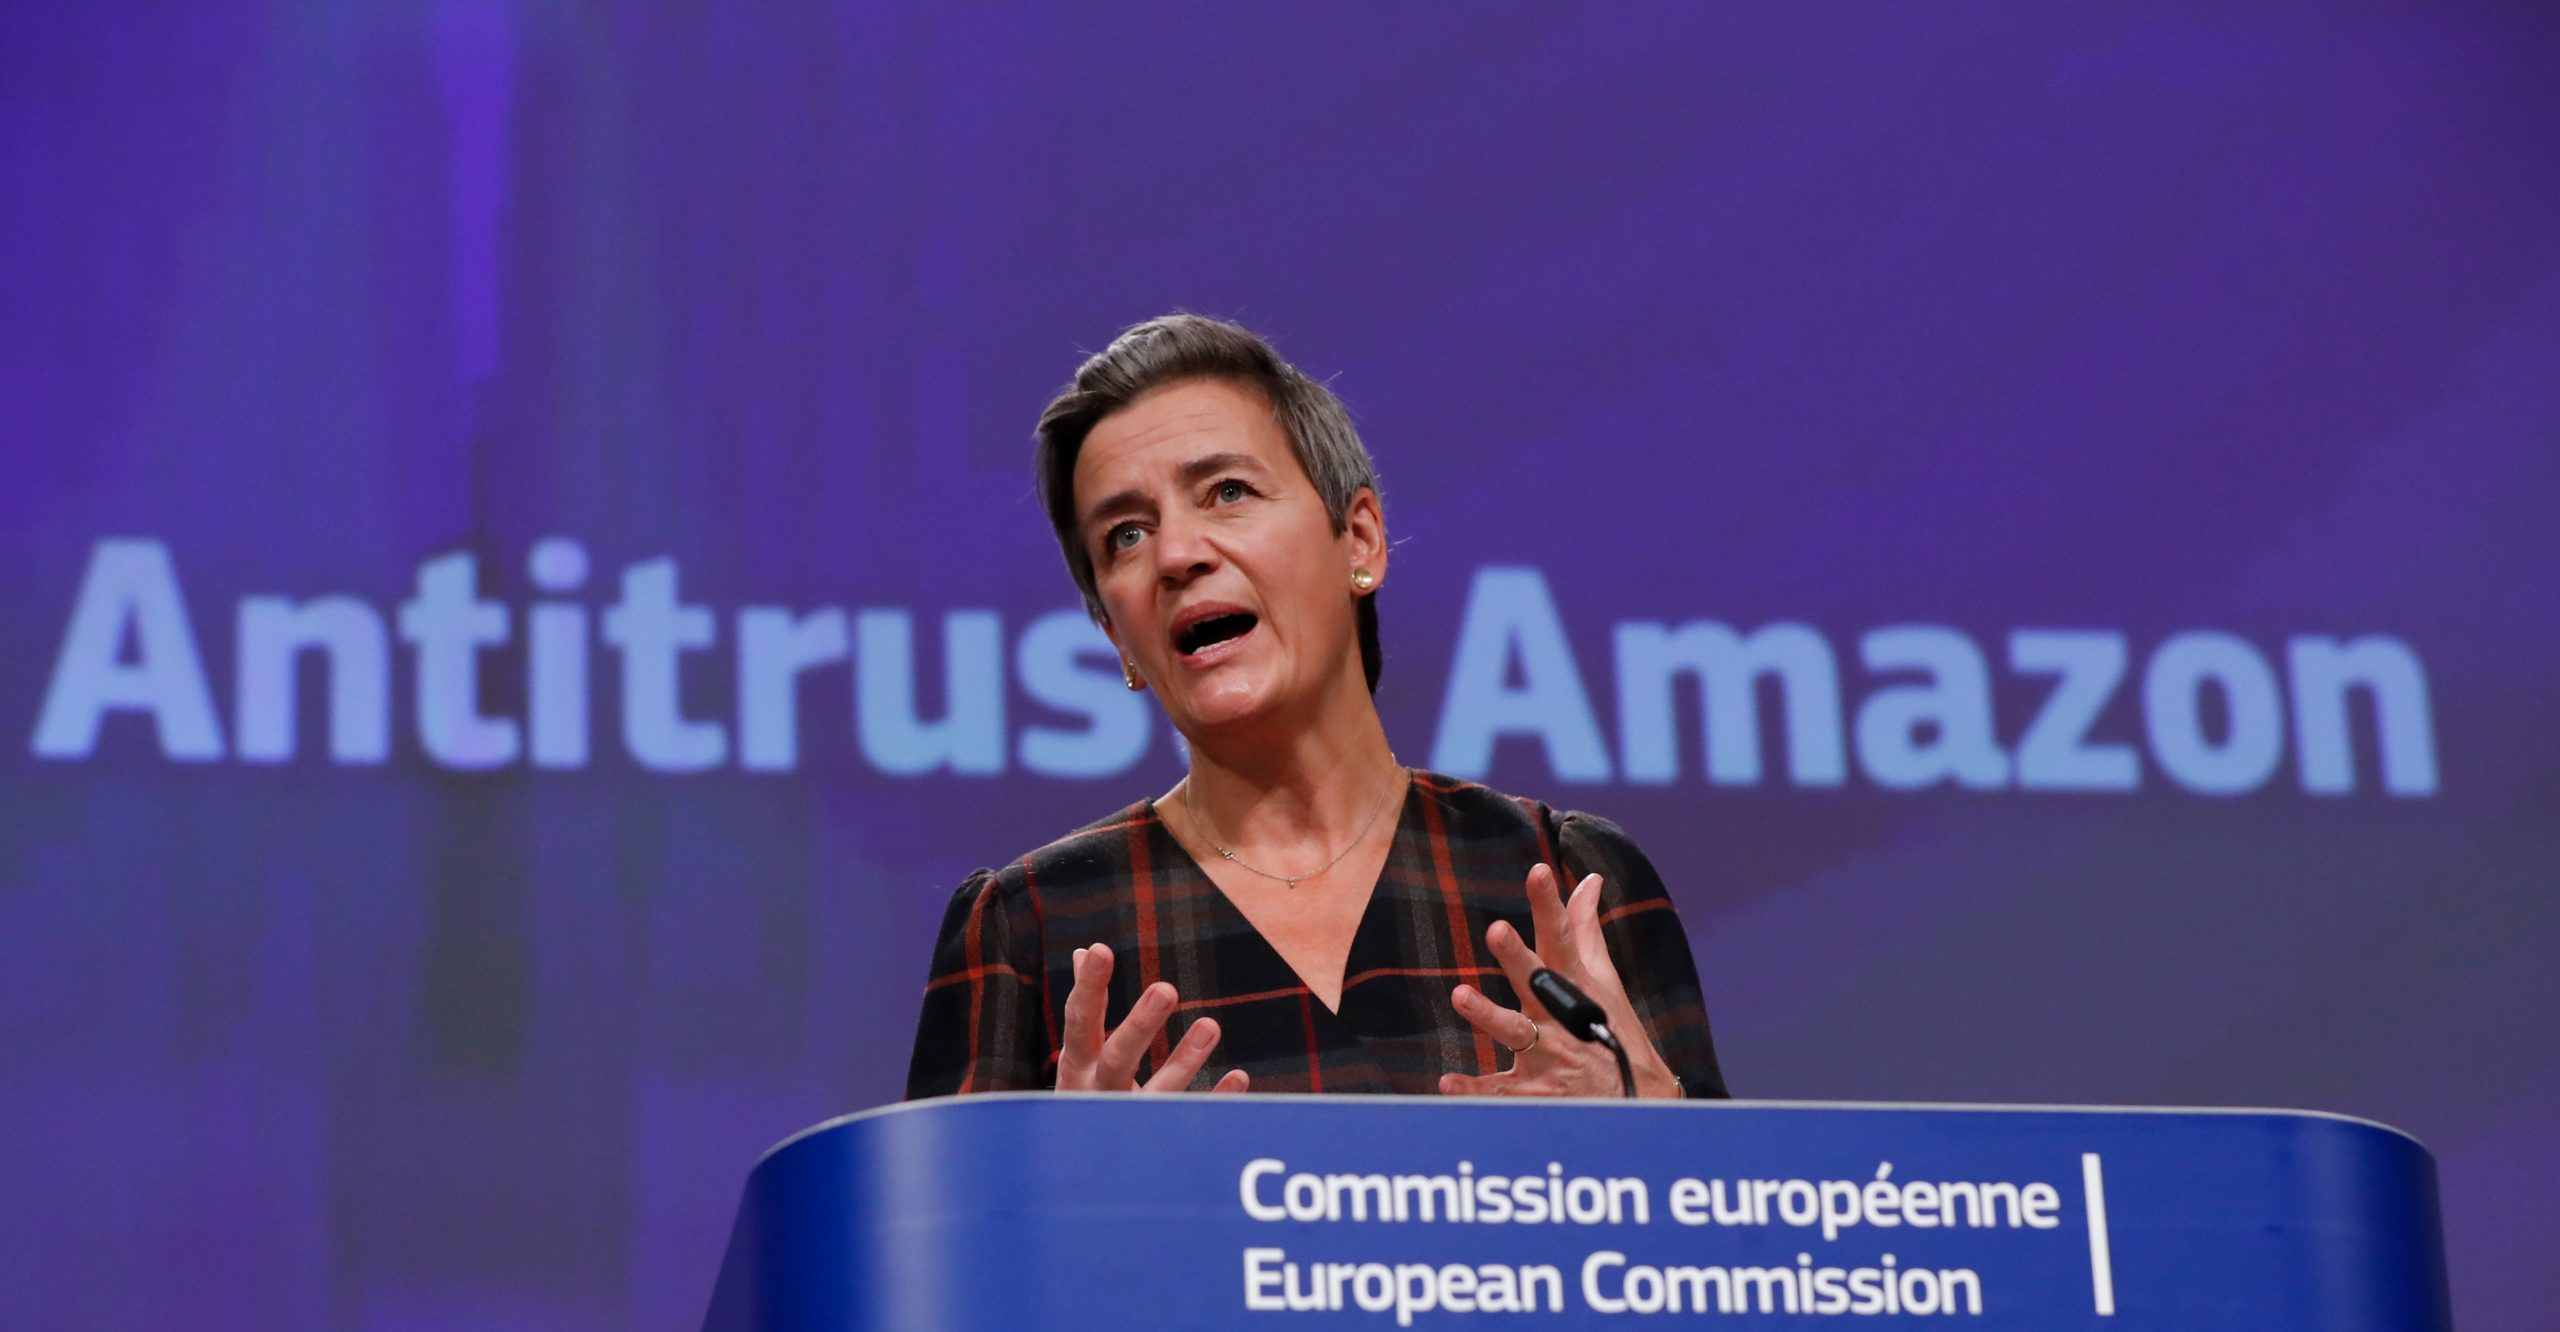 European Executive Vice-President Margrethe Vestager gives a press conference on an anti-trust case with Amazon. (Photo by OLIVIER HOSLET/POOL/AFP via Getty Images)